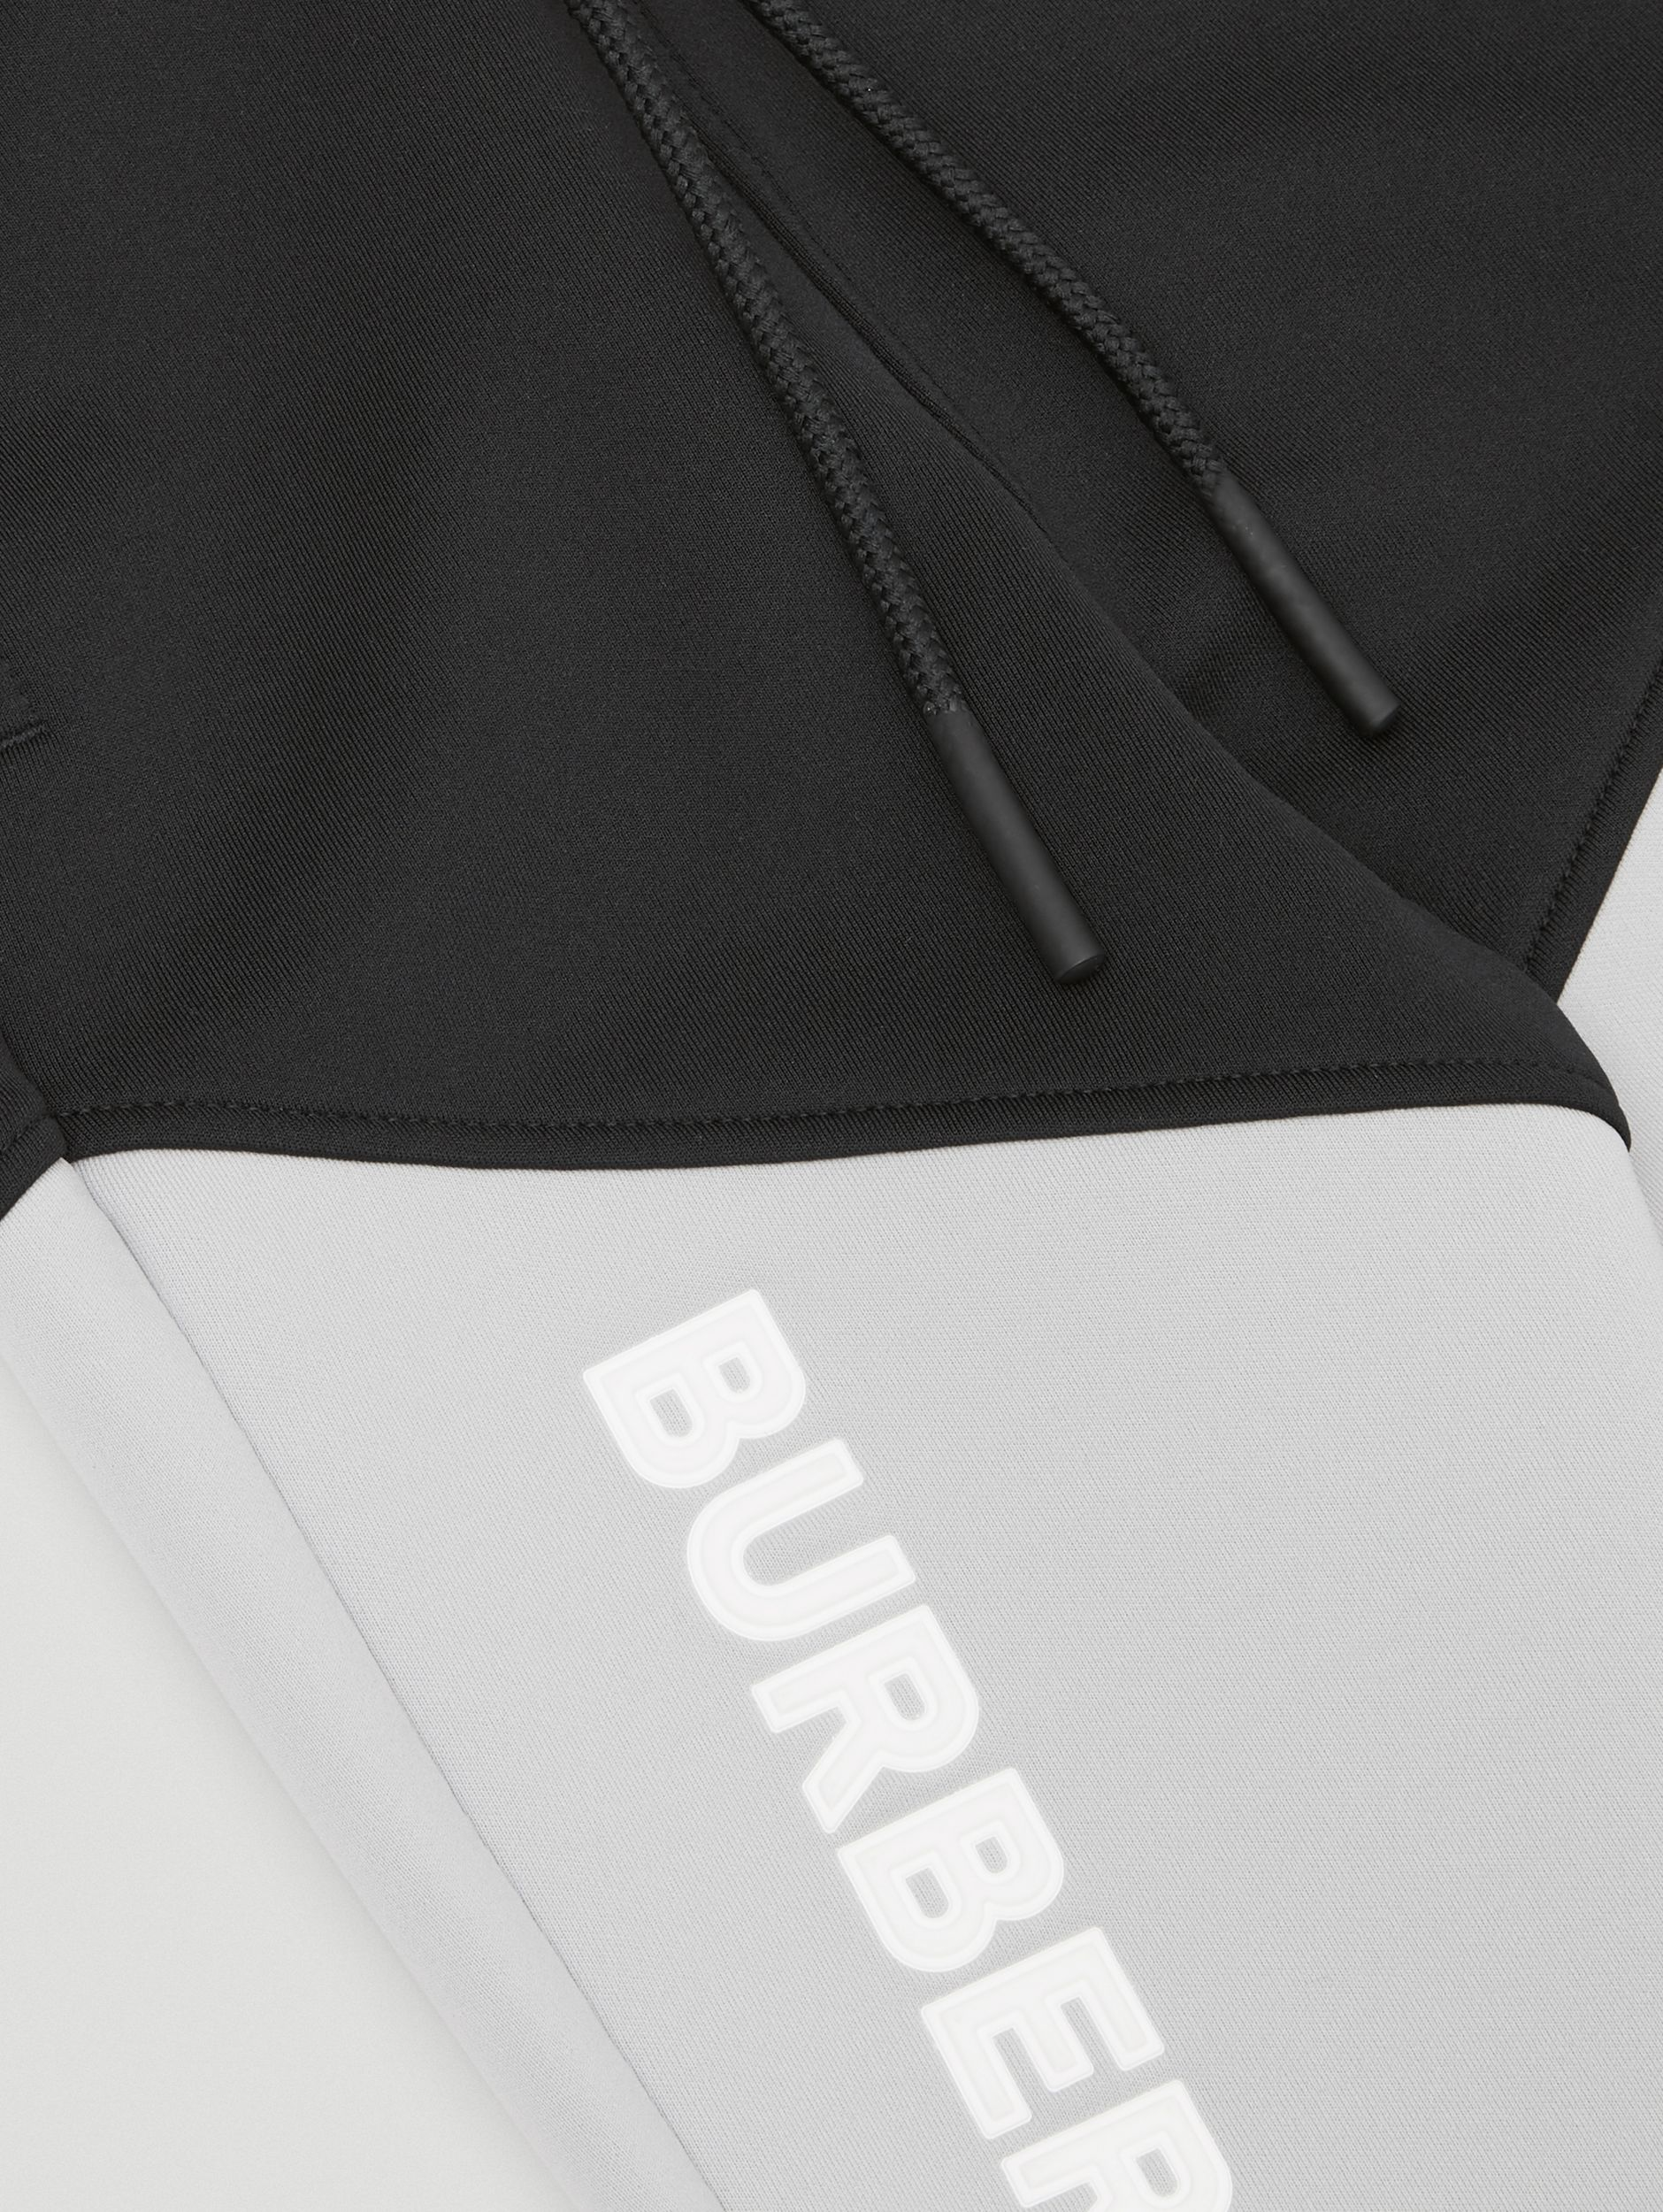 Logo Print Two-tone Stretch Jersey Trackpants in Black - Children | Burberry - 2